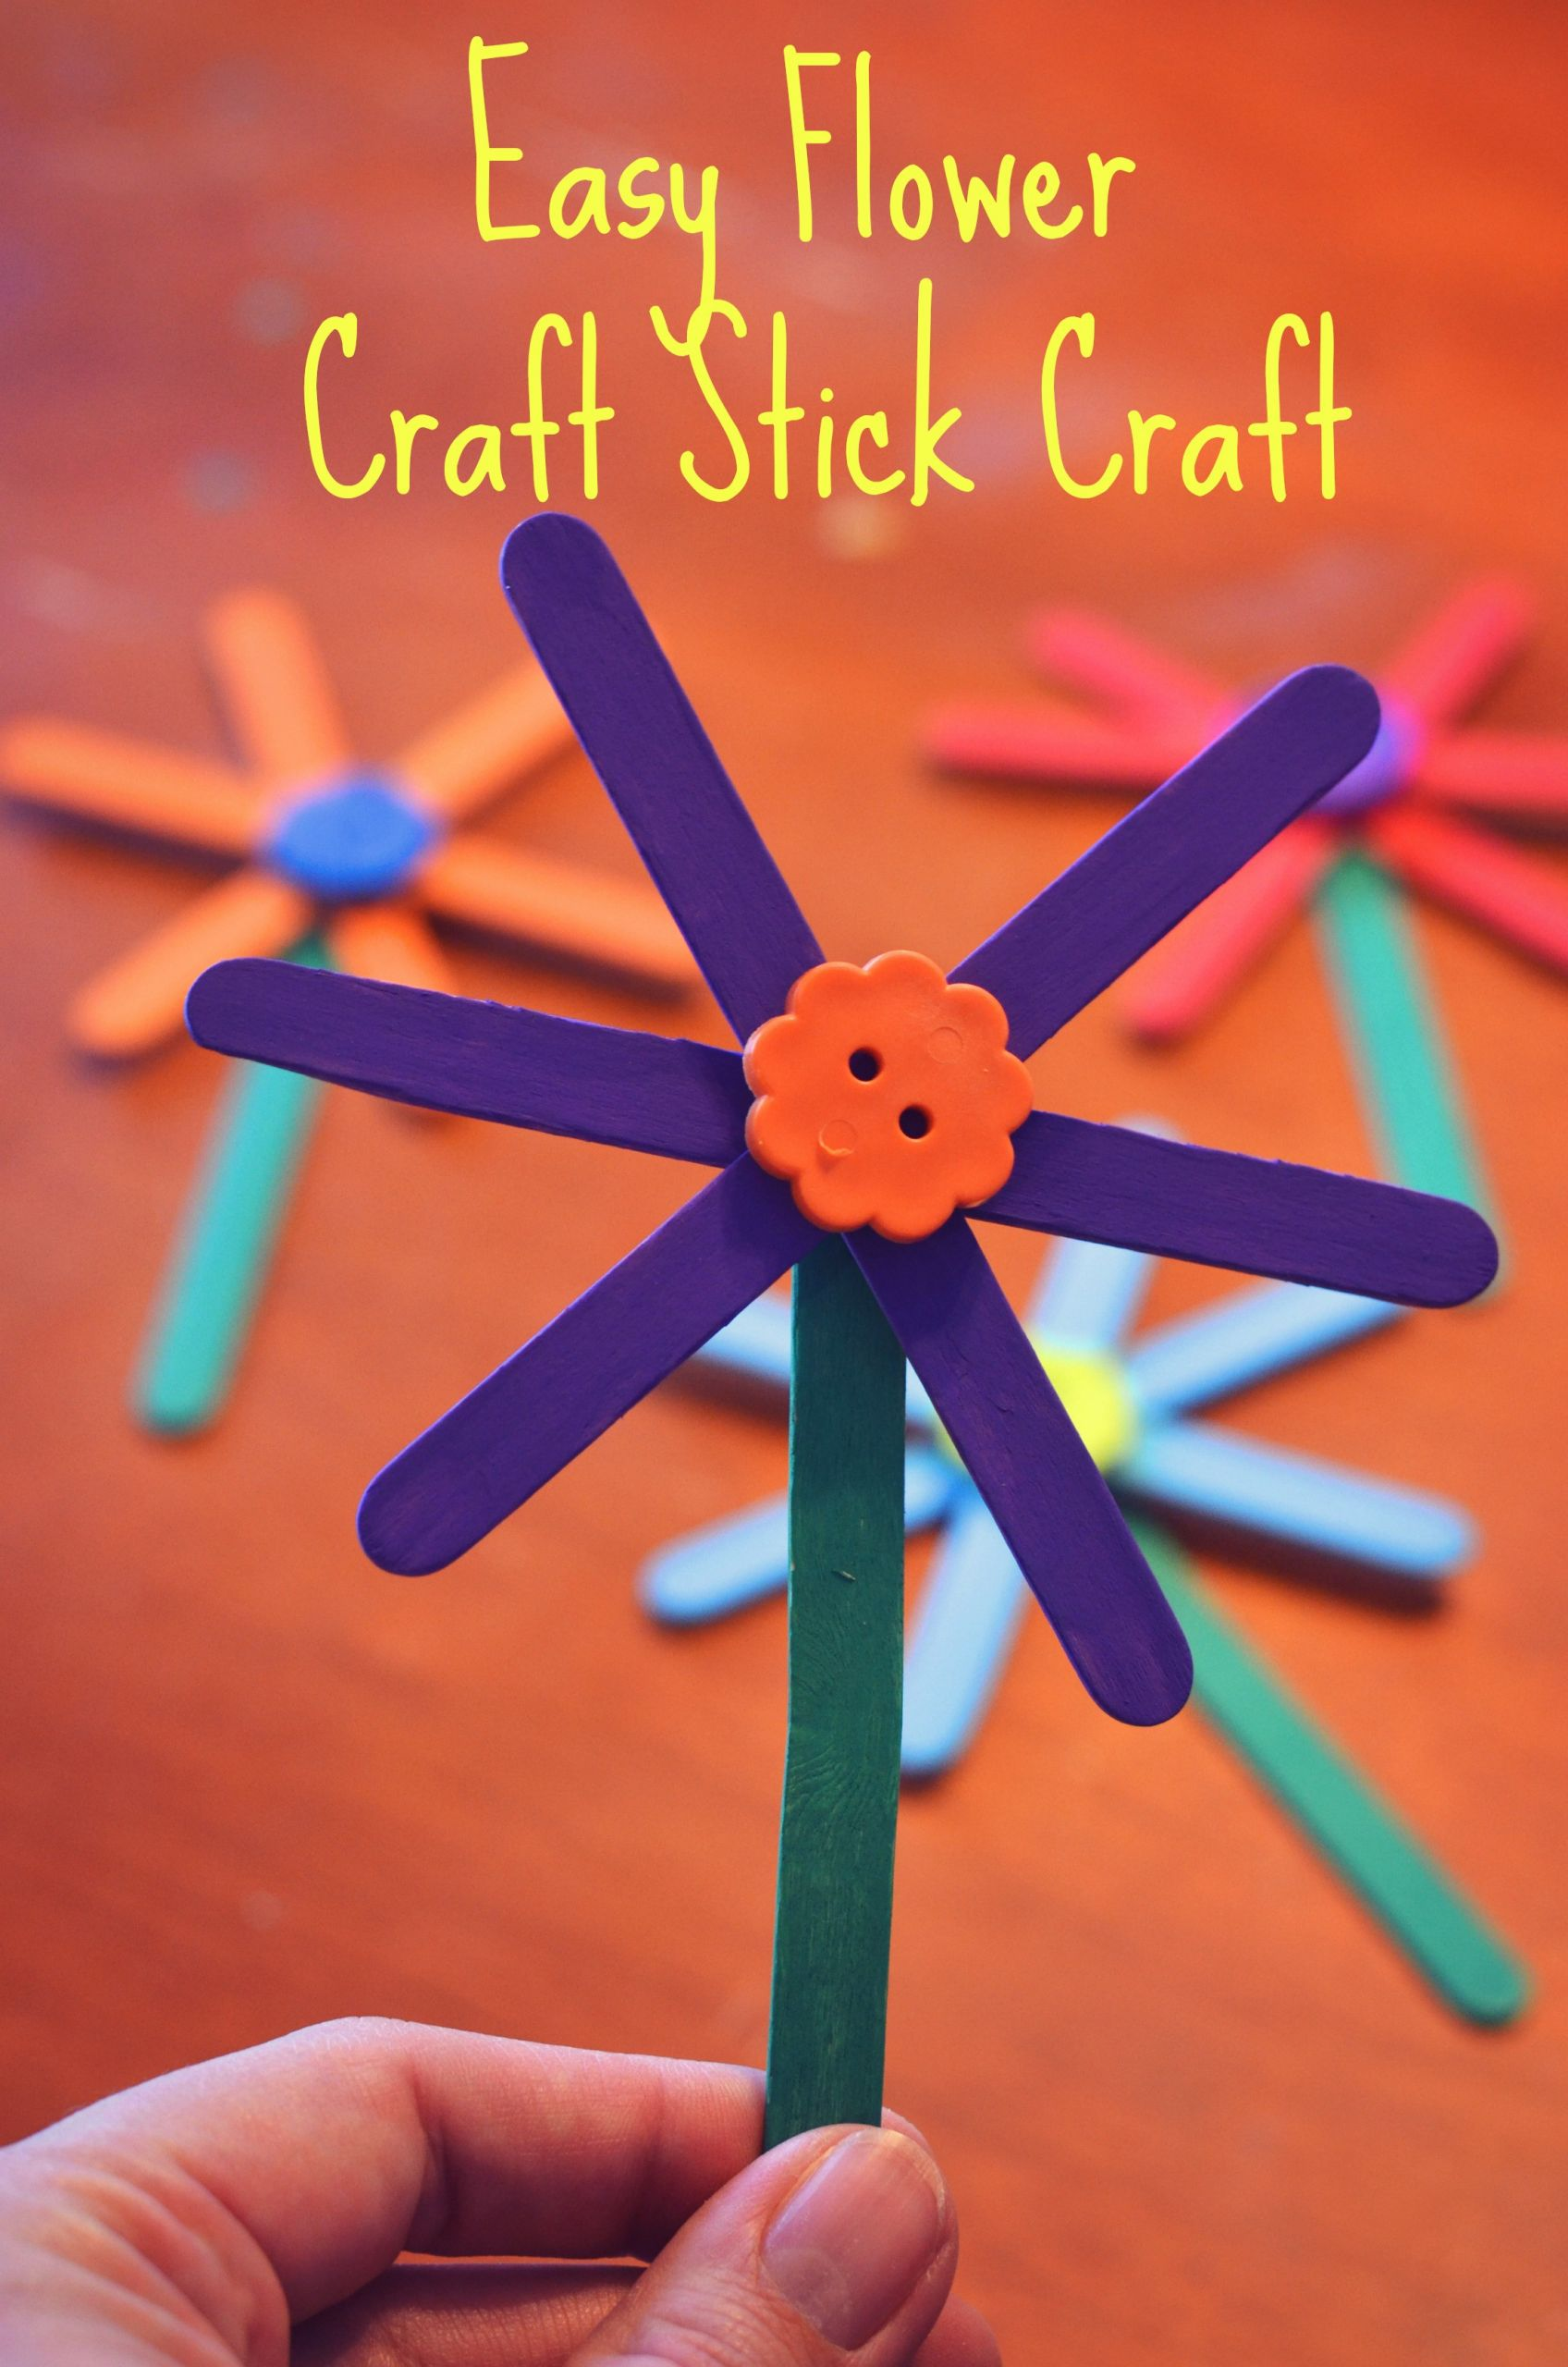 Craft Project For Toddler  Easy Flower Craft Stick Craft for Kids